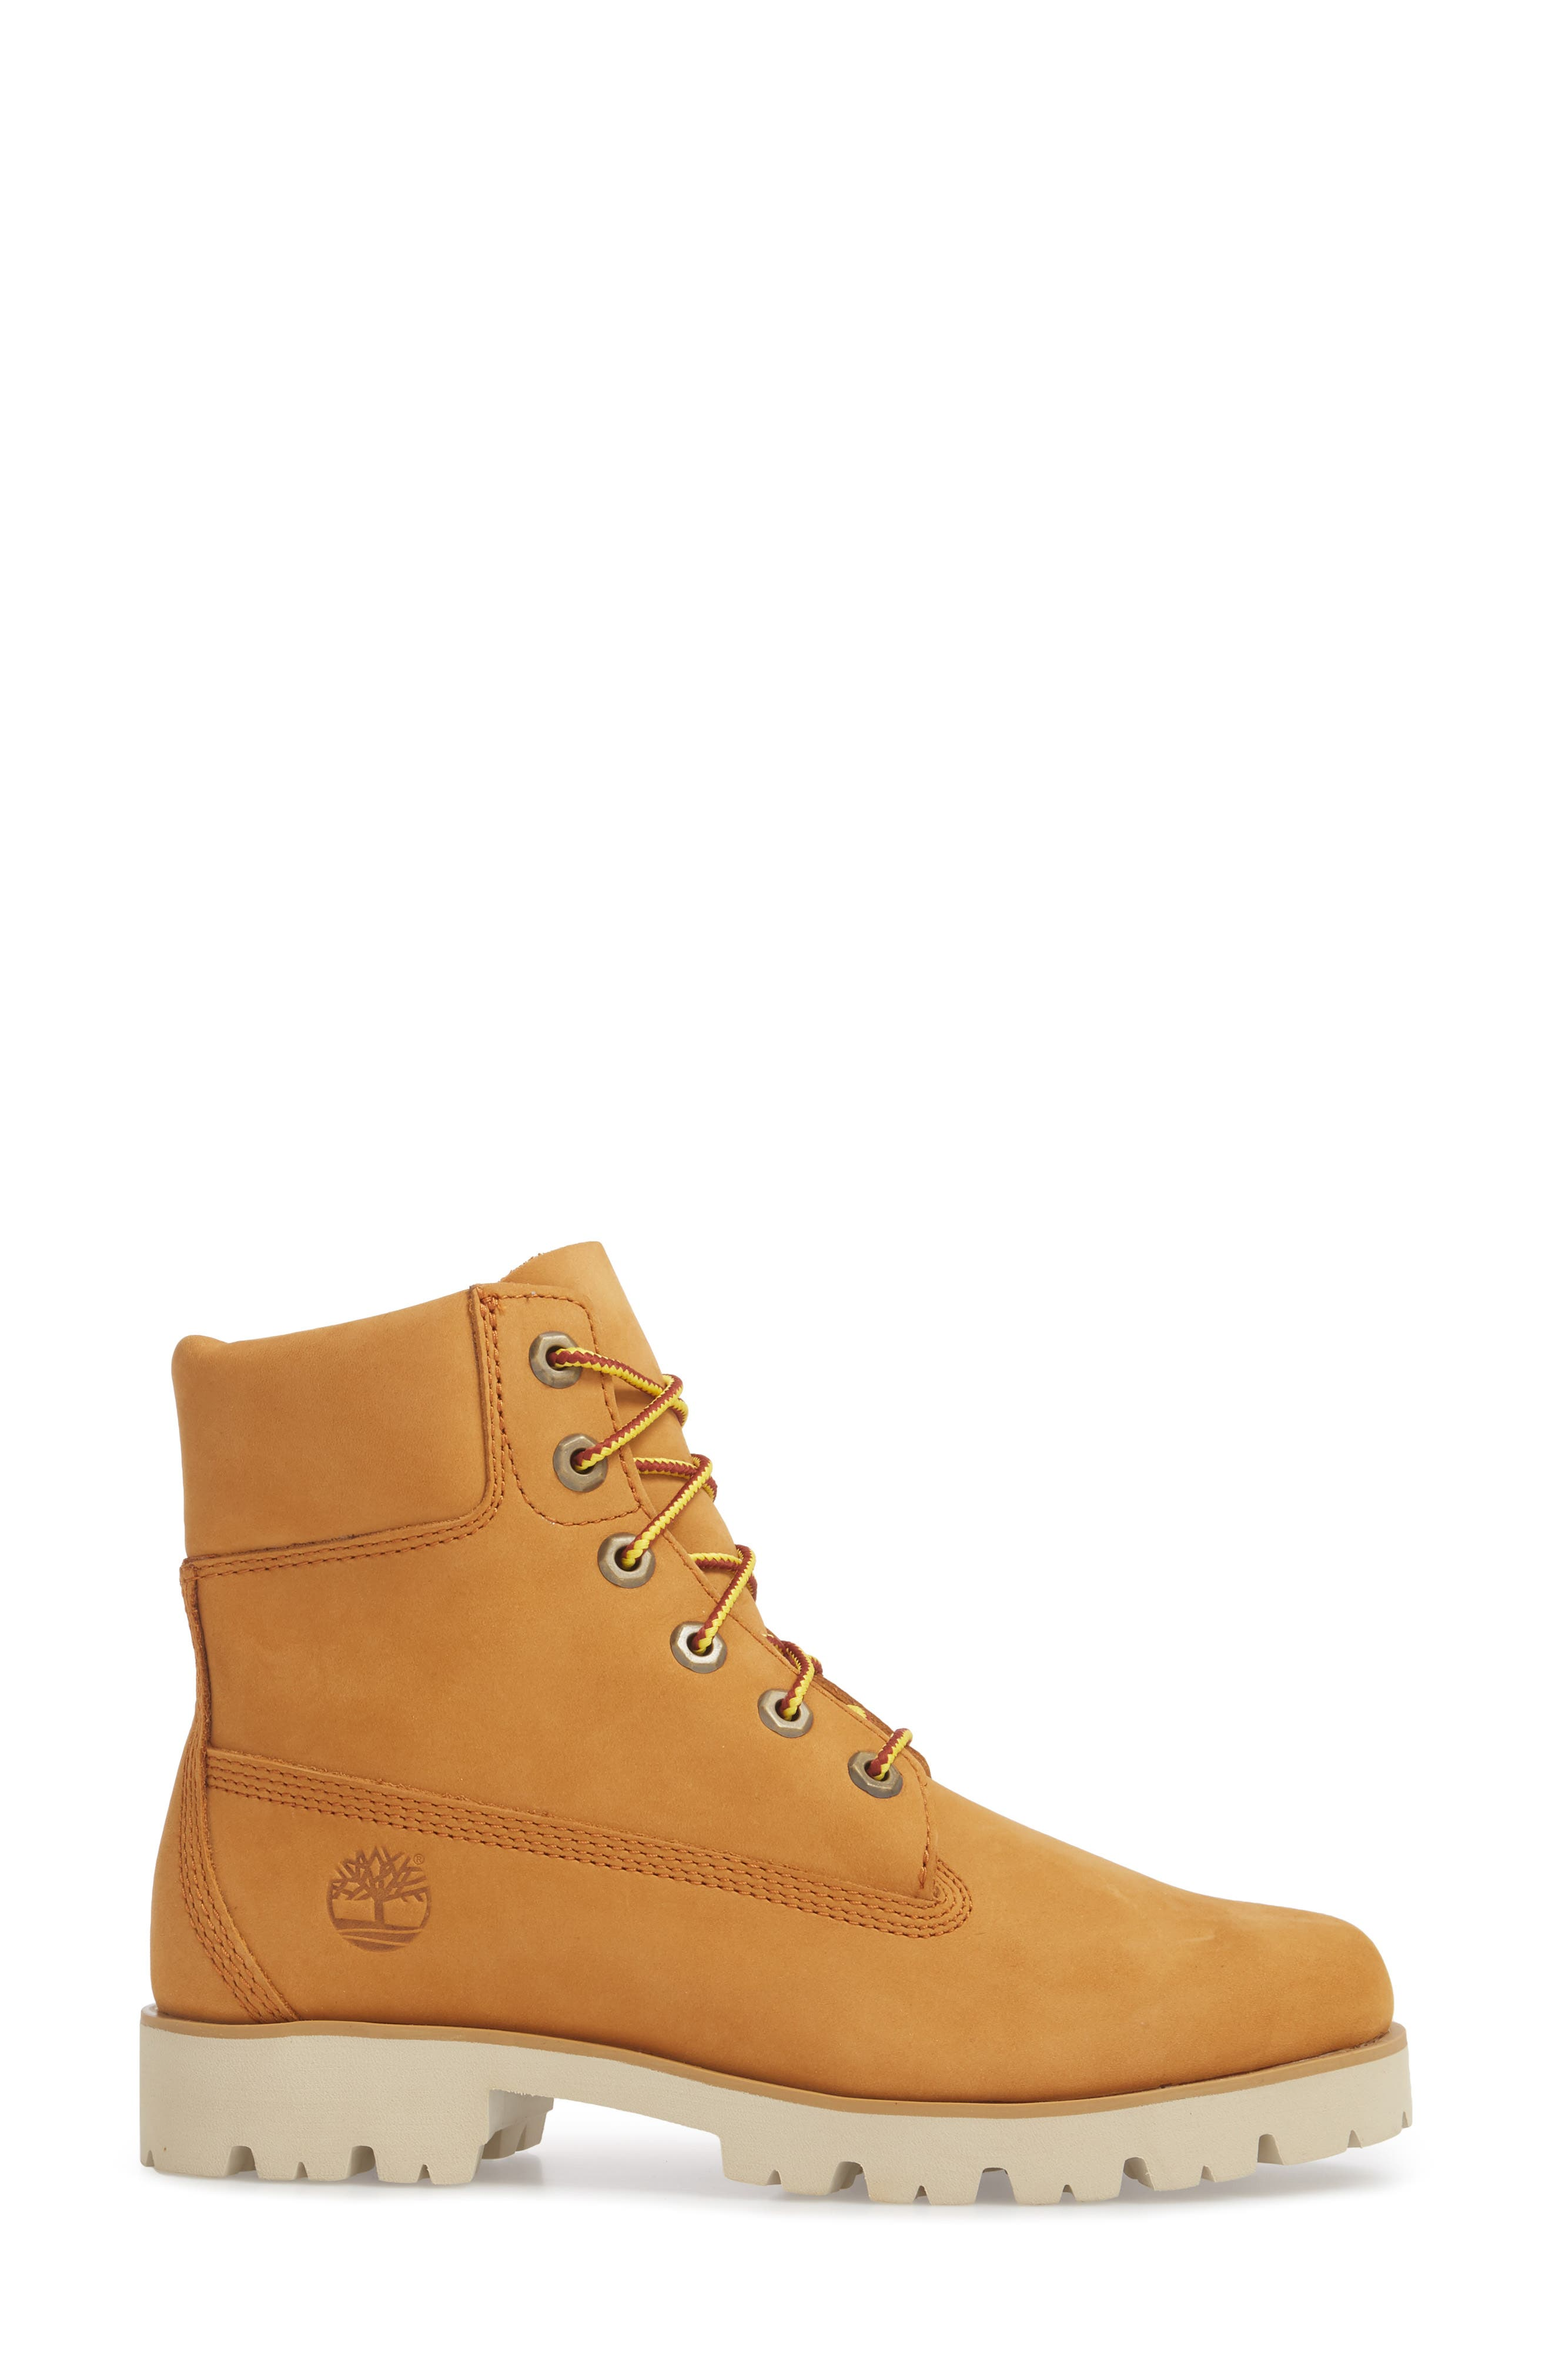 6-Inch Heritage Lite Water-Resistant Boot,                             Alternate thumbnail 3, color,                             Wheat Nubuck